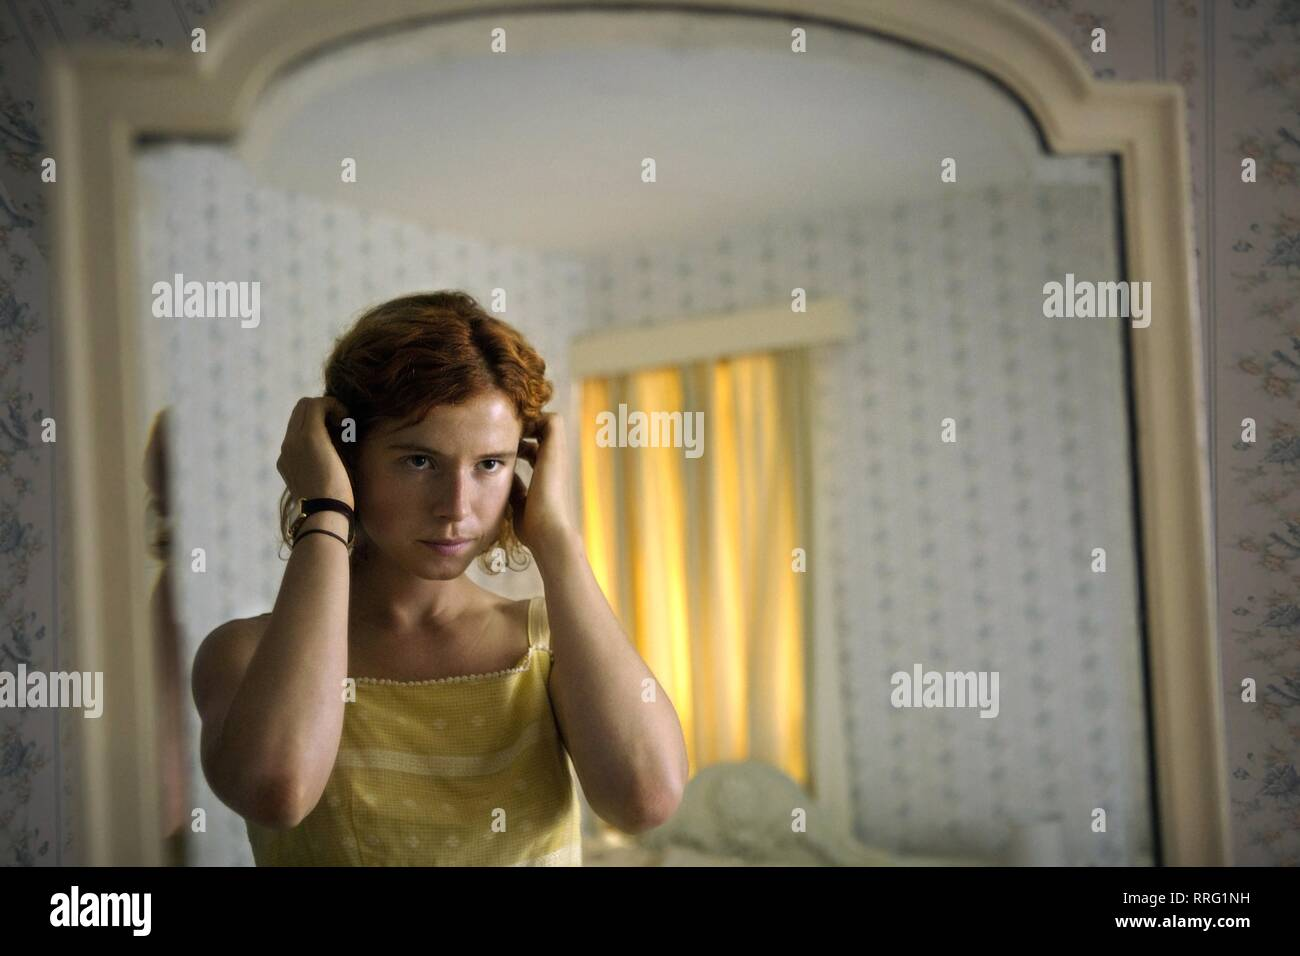 BEAST, JESSIE BUCKLEY, 2017 - Stock Image